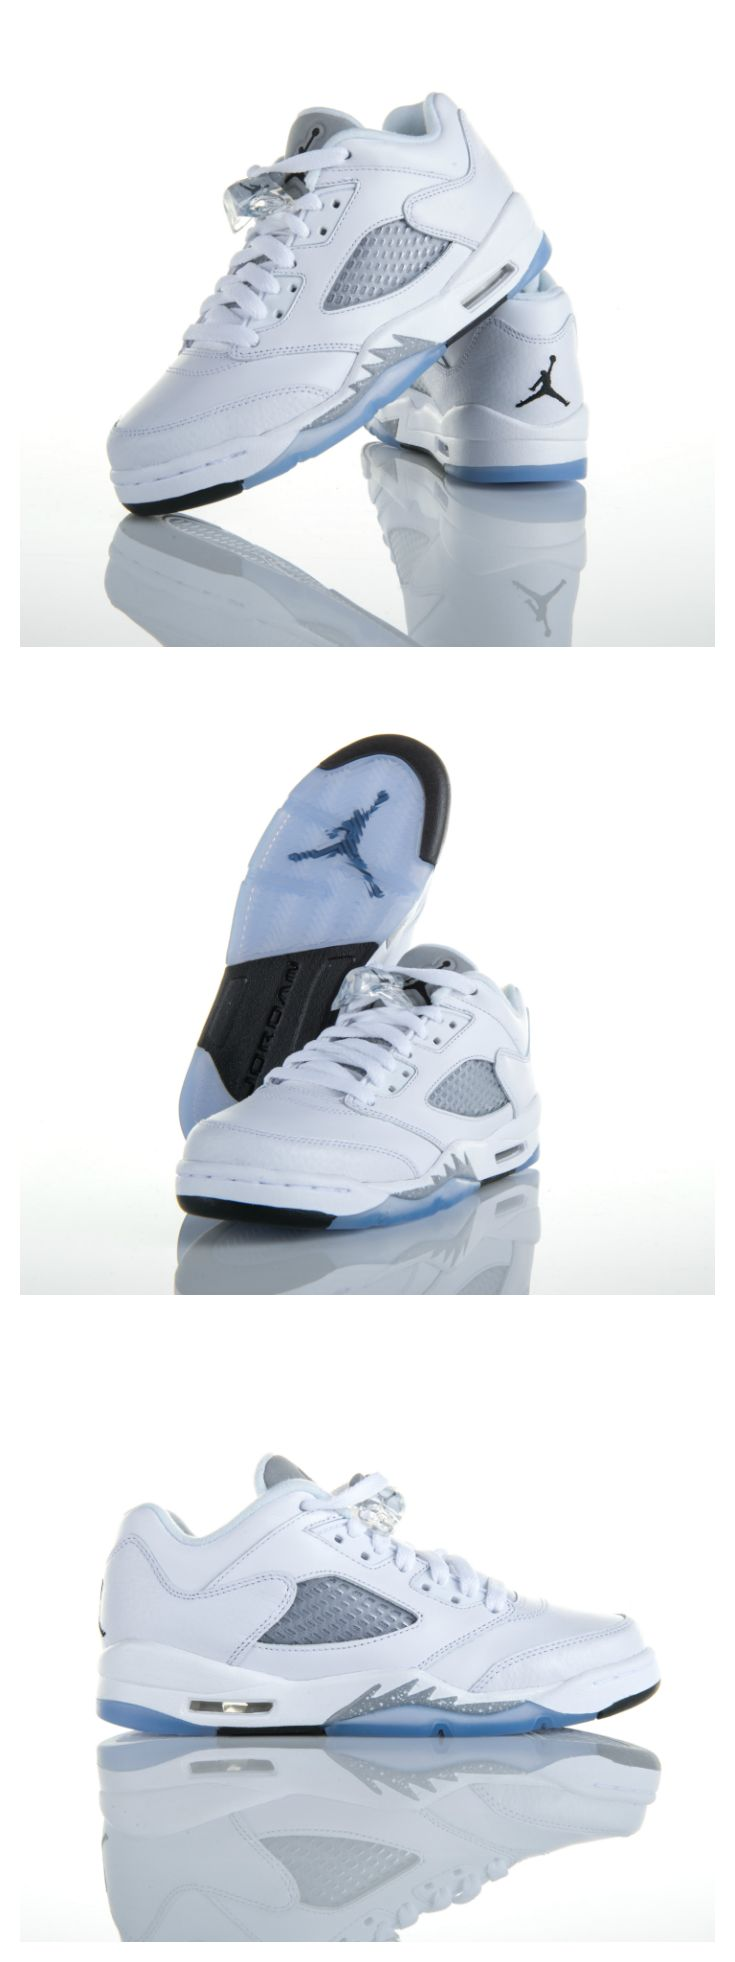 Shine with every step in the girls' Jordan Retro 5 'Metallic Silver'.